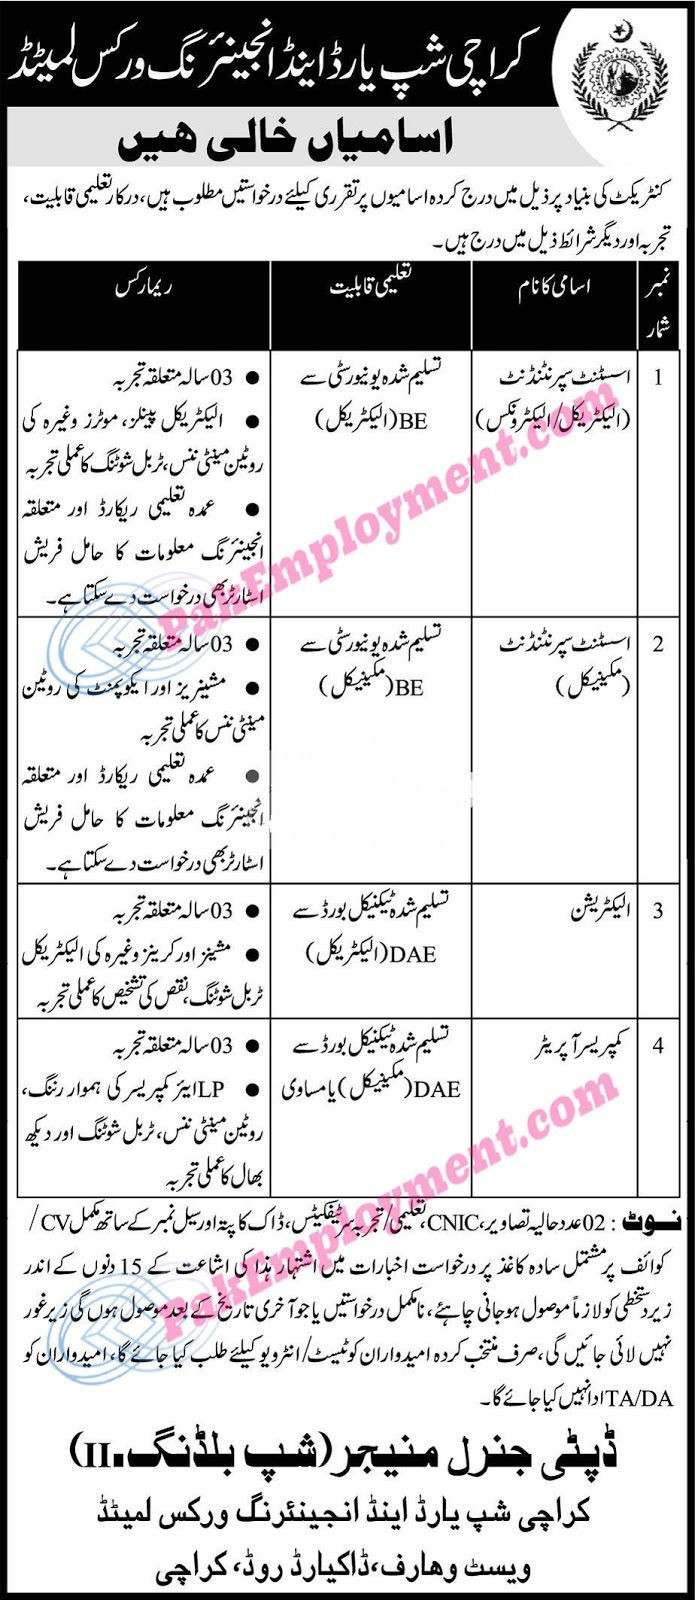 Title Of Job  Detail of Job  Name Of Job  Karachi Ship yard Company   Job Which Province  Karachi Pakistan  District/City  Karachi  Government/Private  Private   Number of Posts  Not Mention  Method Of Apply  Application Form  Publish Date  16 March 2017  Last Date  30 March 2017  News Paper  Express  Karachi Shipyard and Engineering Works Limited Jobs 2017Application required on the Contract basis from Karachi local persons who interested in these JobsVacancies  Assistant…